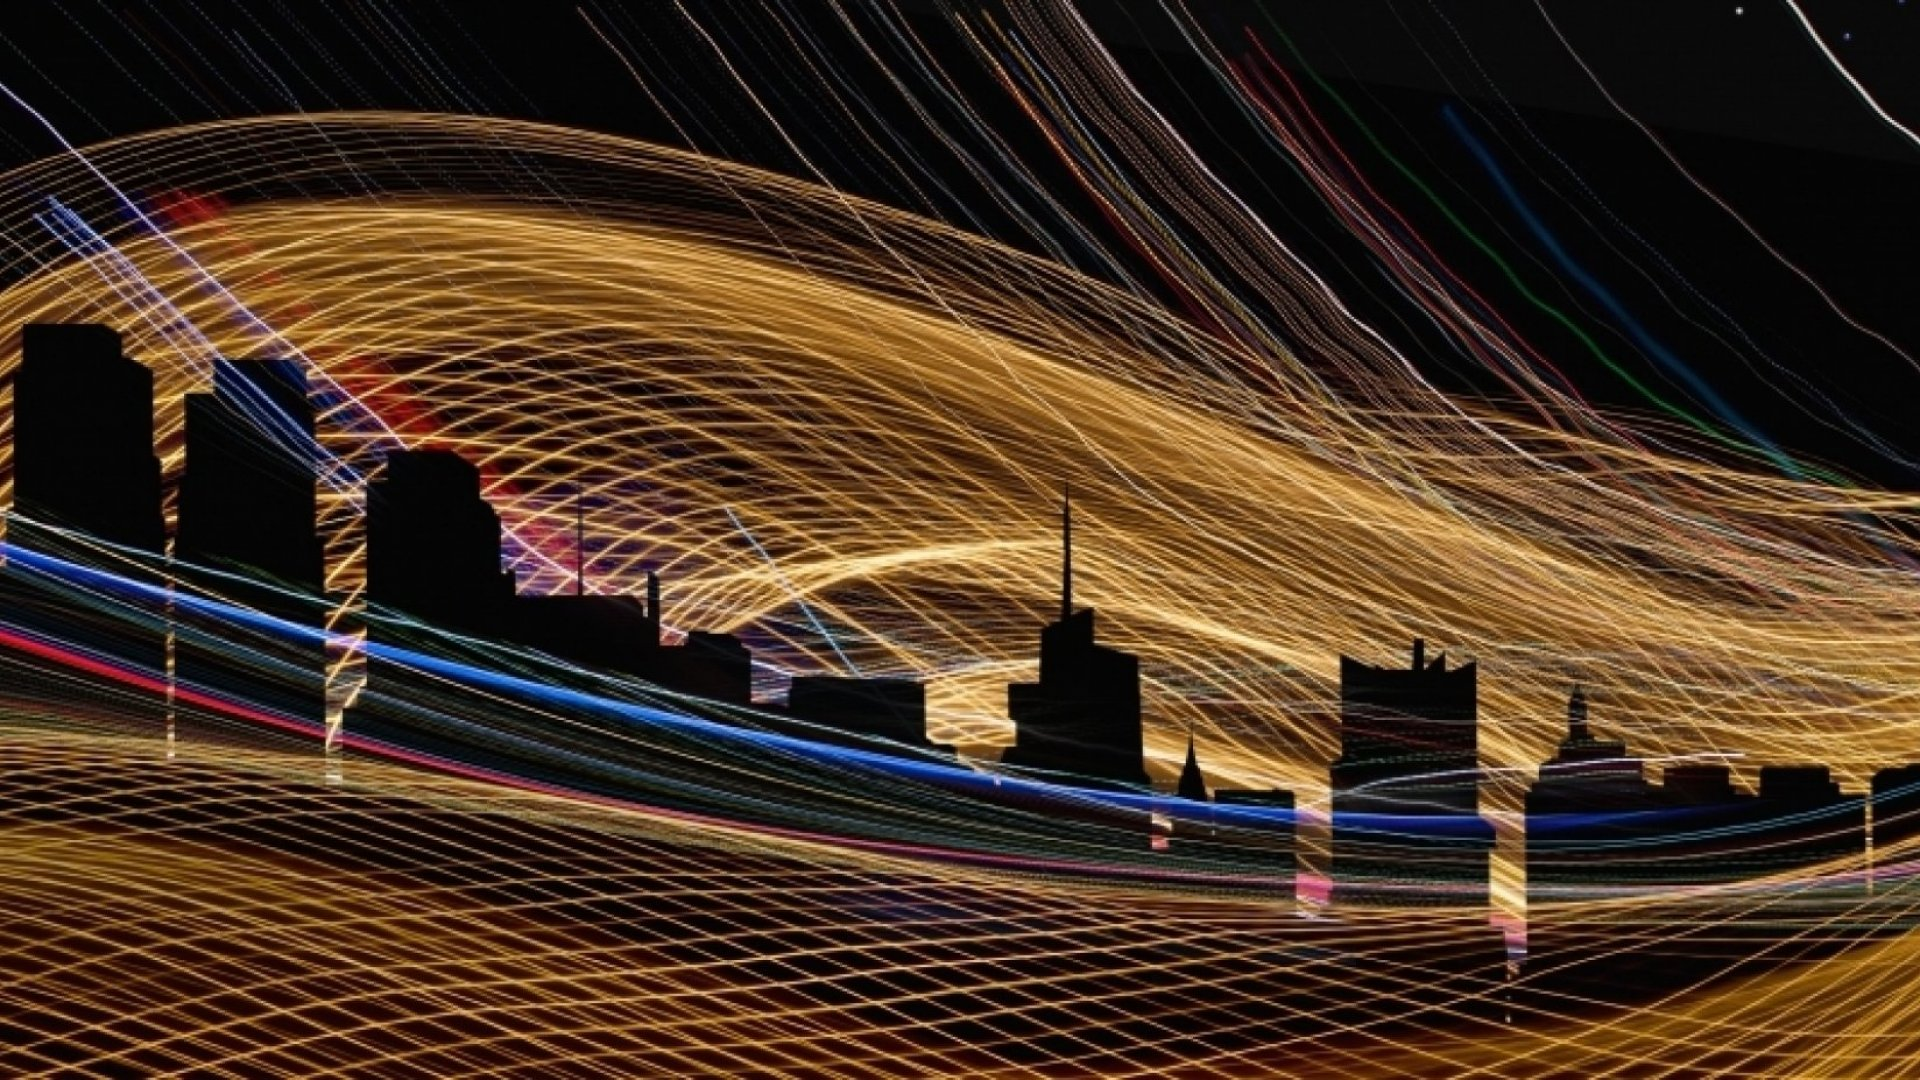 A Starry-Eyed Vision for Blazing Fast Wireless Internet Access